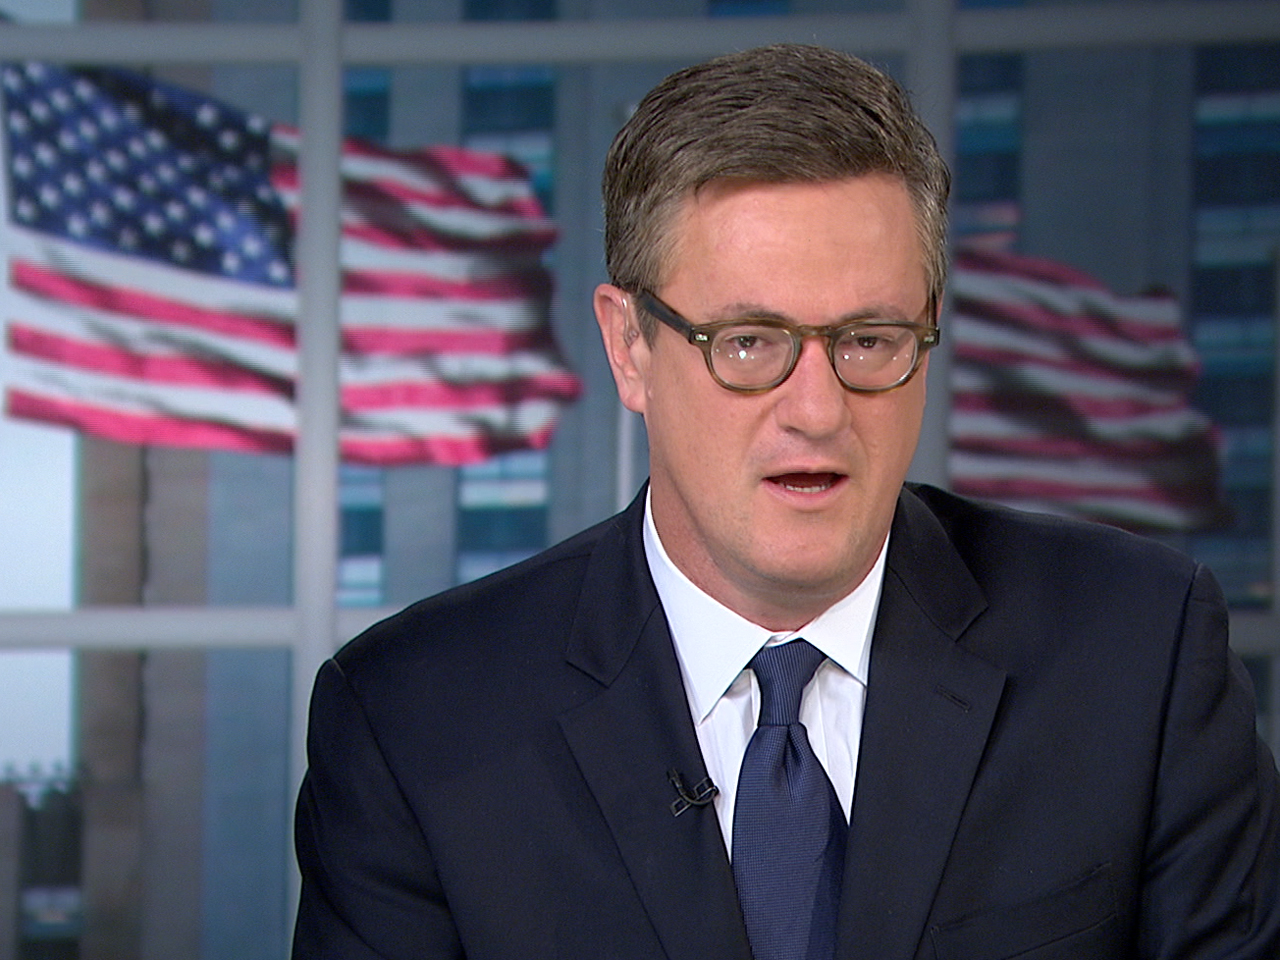 I disagreed with Obama. But what Trump has done makes those differences insignificant. By Joe Scarborough